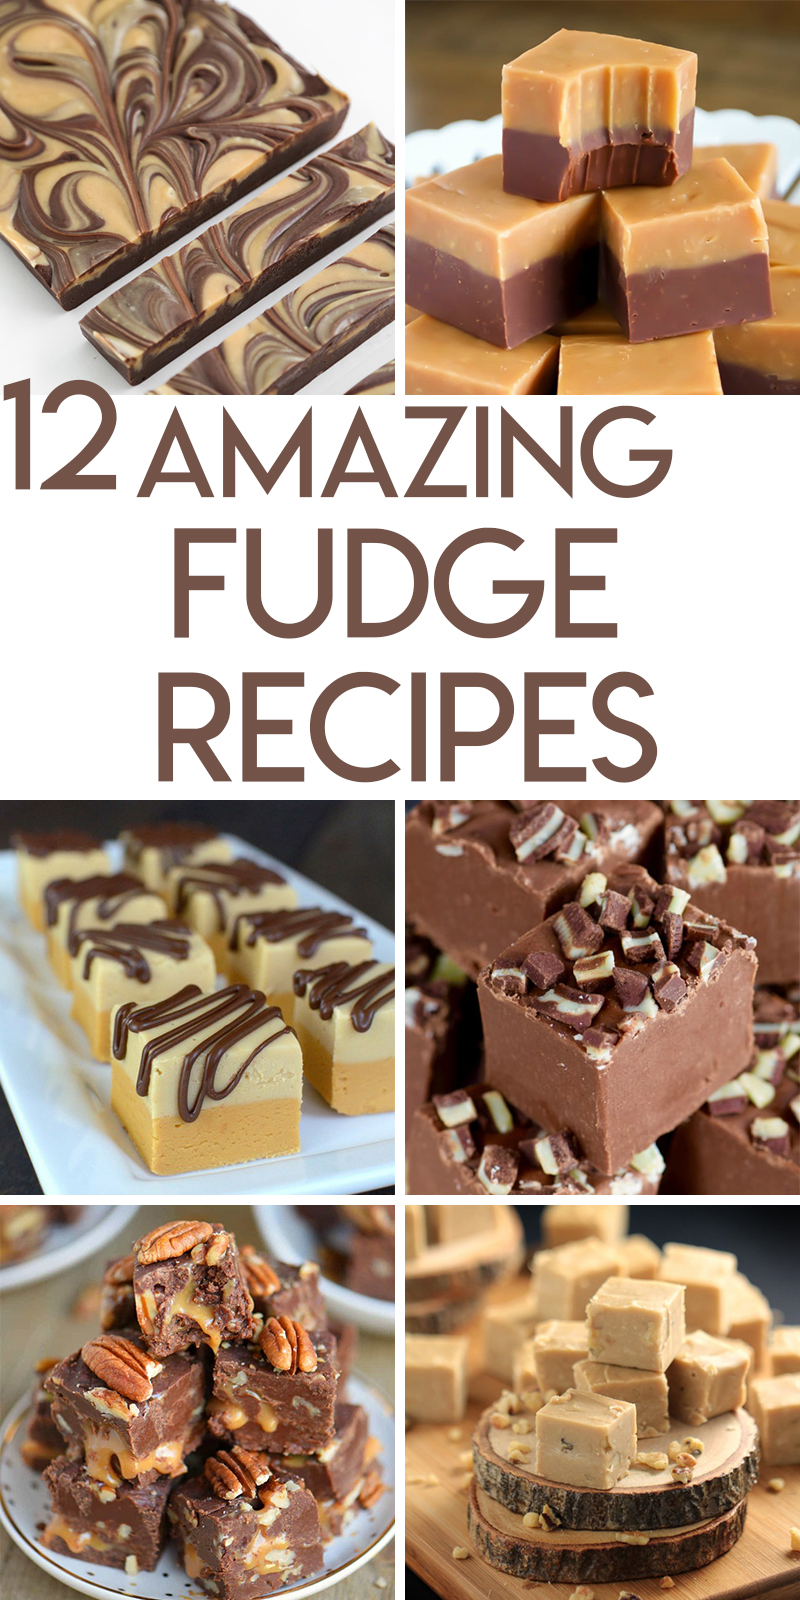 12 fabulous fudge recipes for Christmas goodie trays